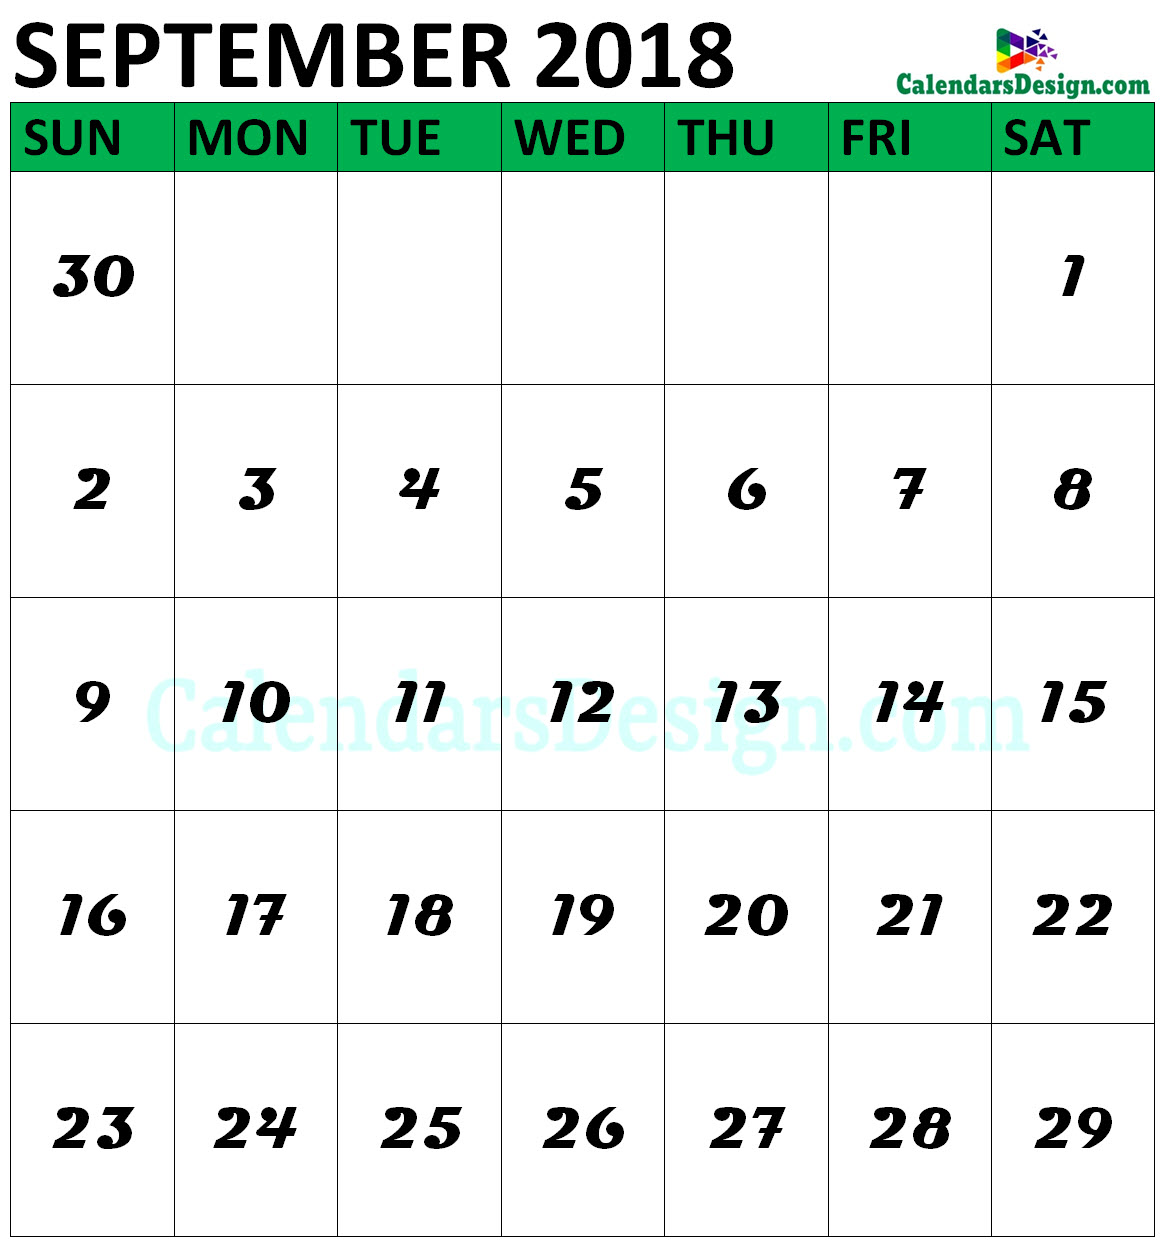 September 2018 Calendar Vertical